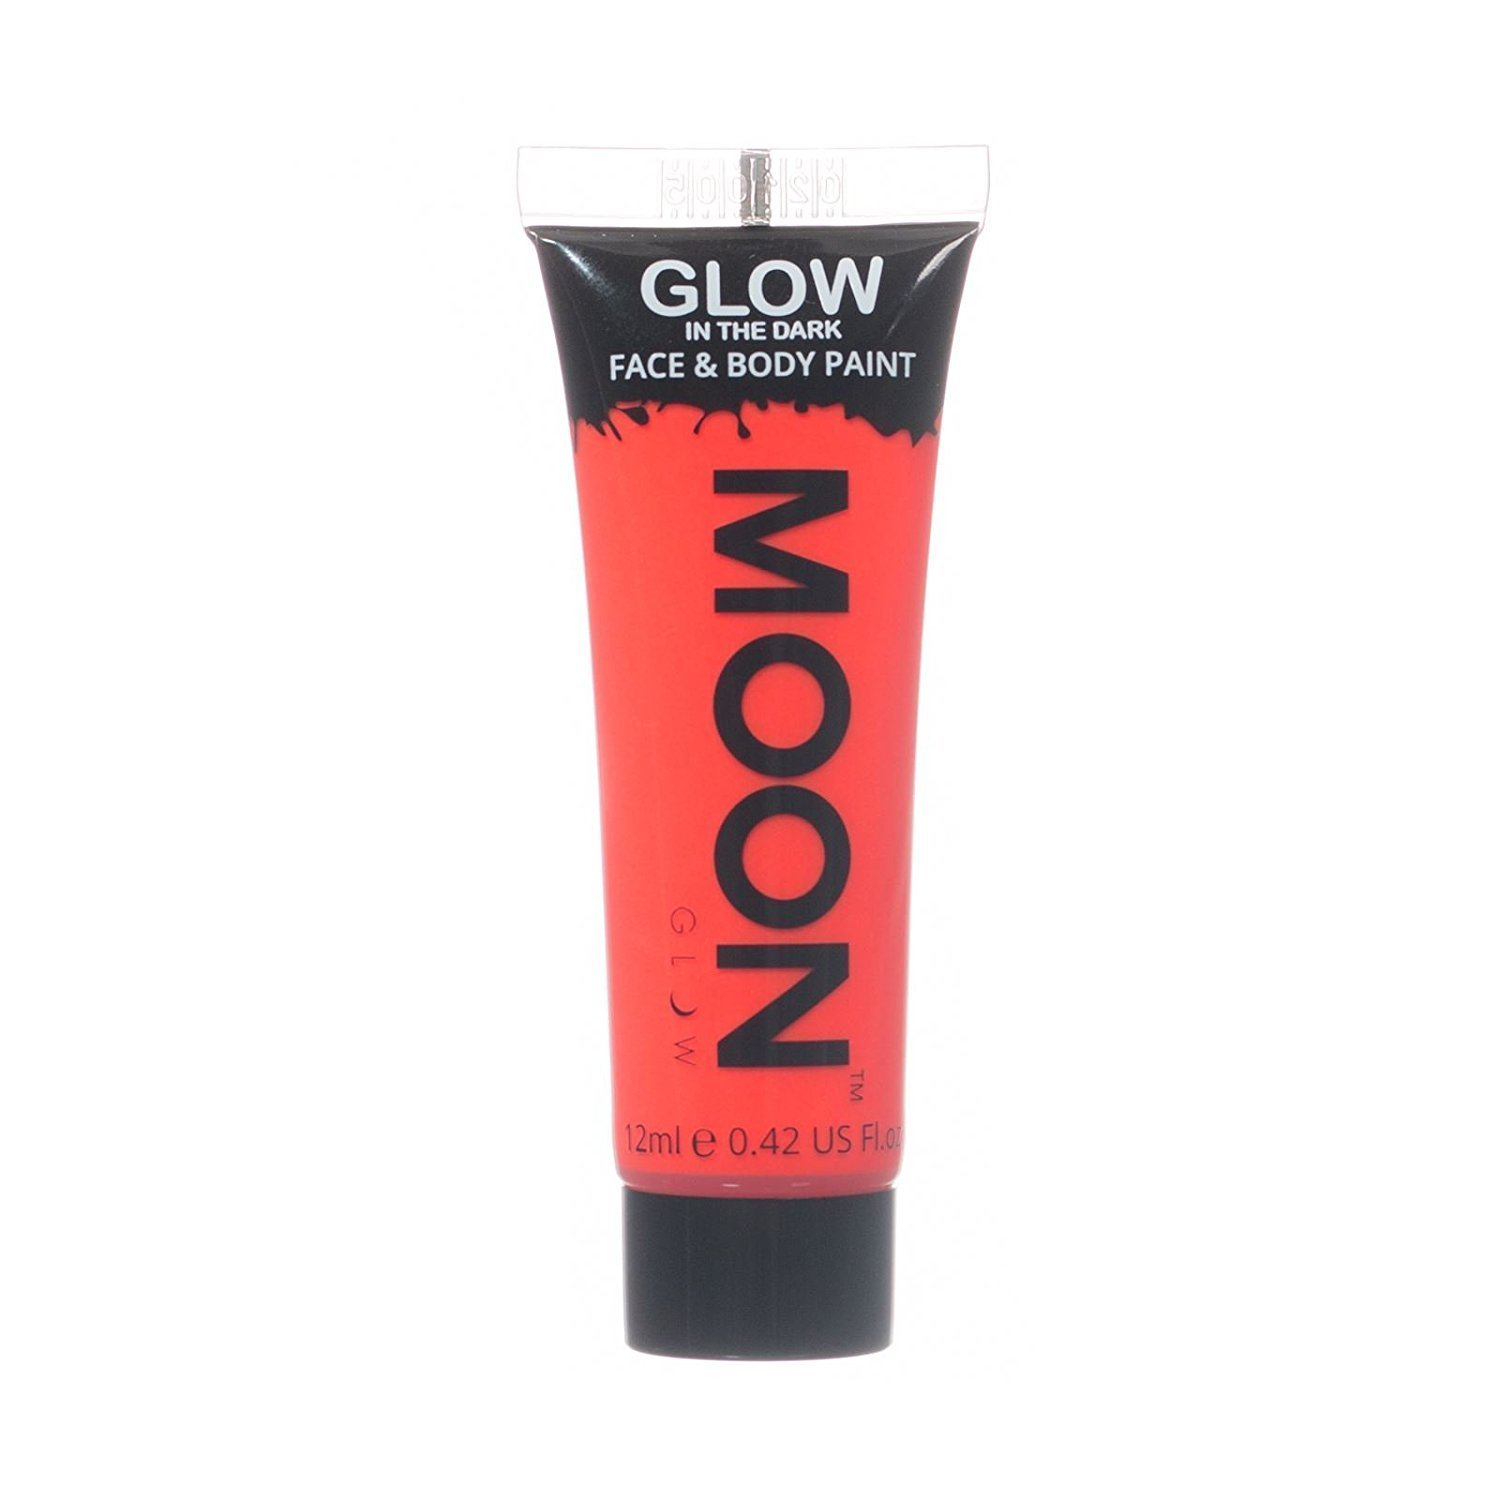 Moon Glow – Glow in the Dark Face & Body Paint - 0.42oz Red – Phosphorescent - Charge to Glow